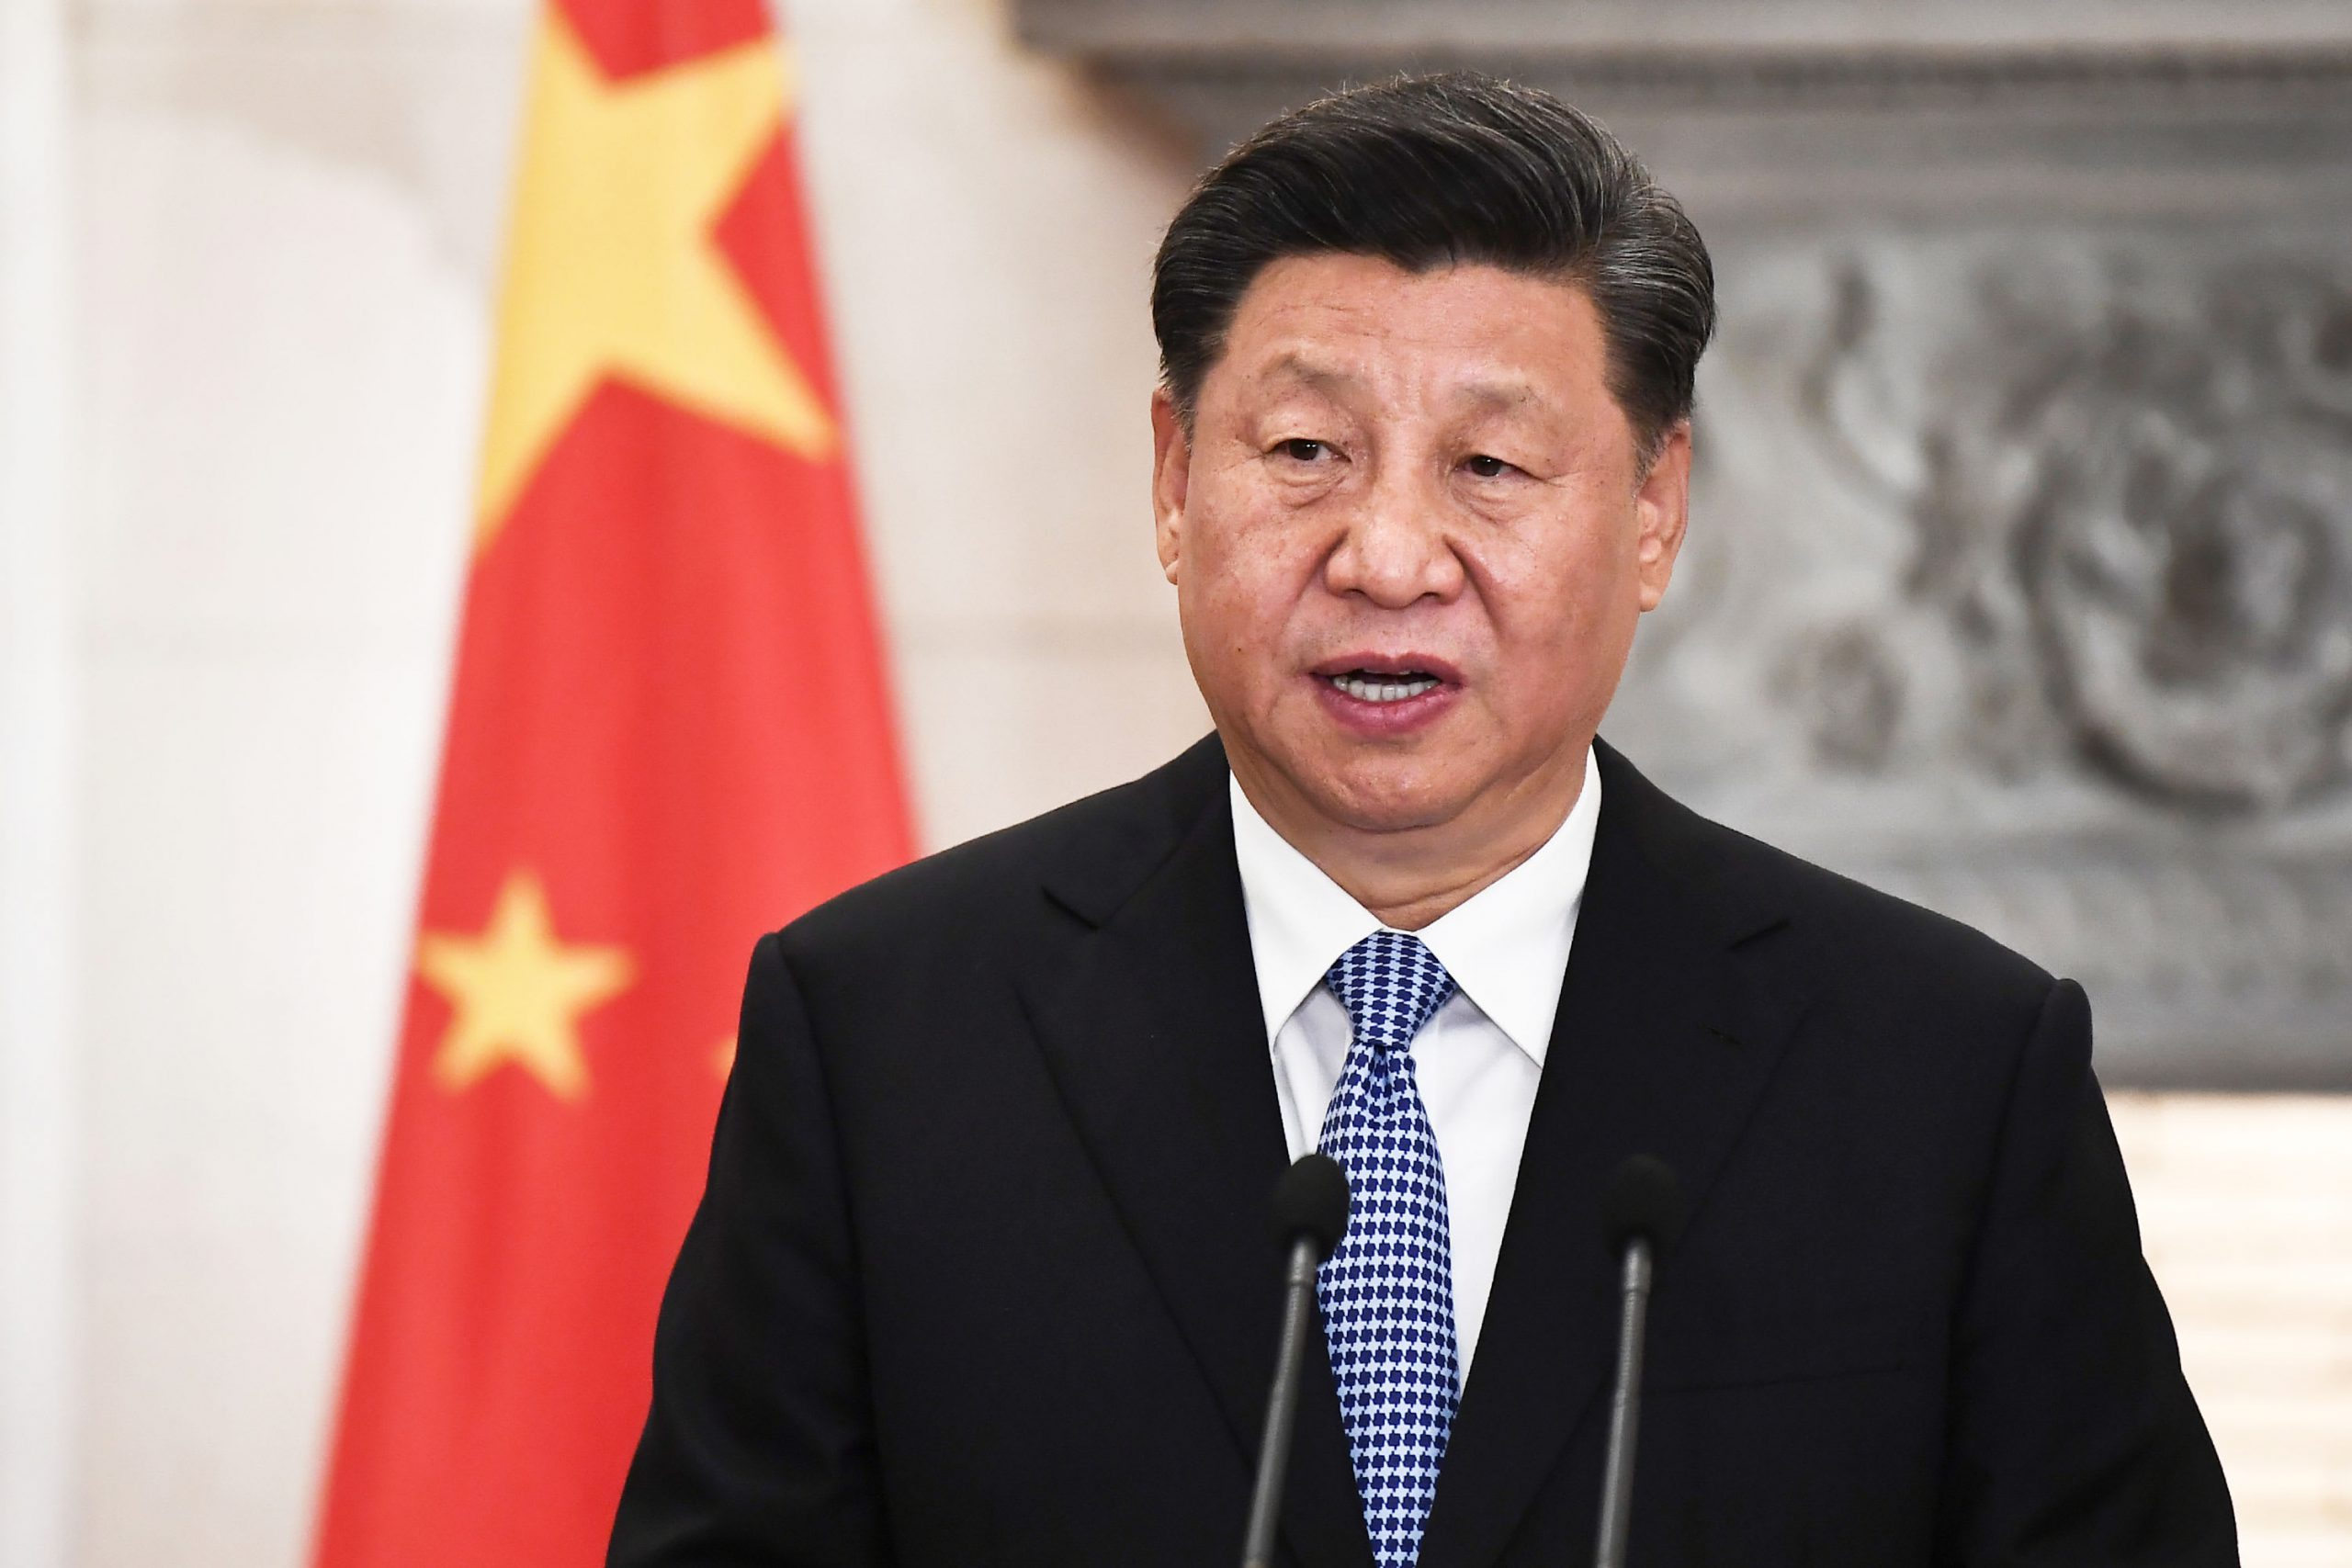 Xi Jinping says 'phase one' trade deal benefits both US and China, seeks to sign as soon as possible